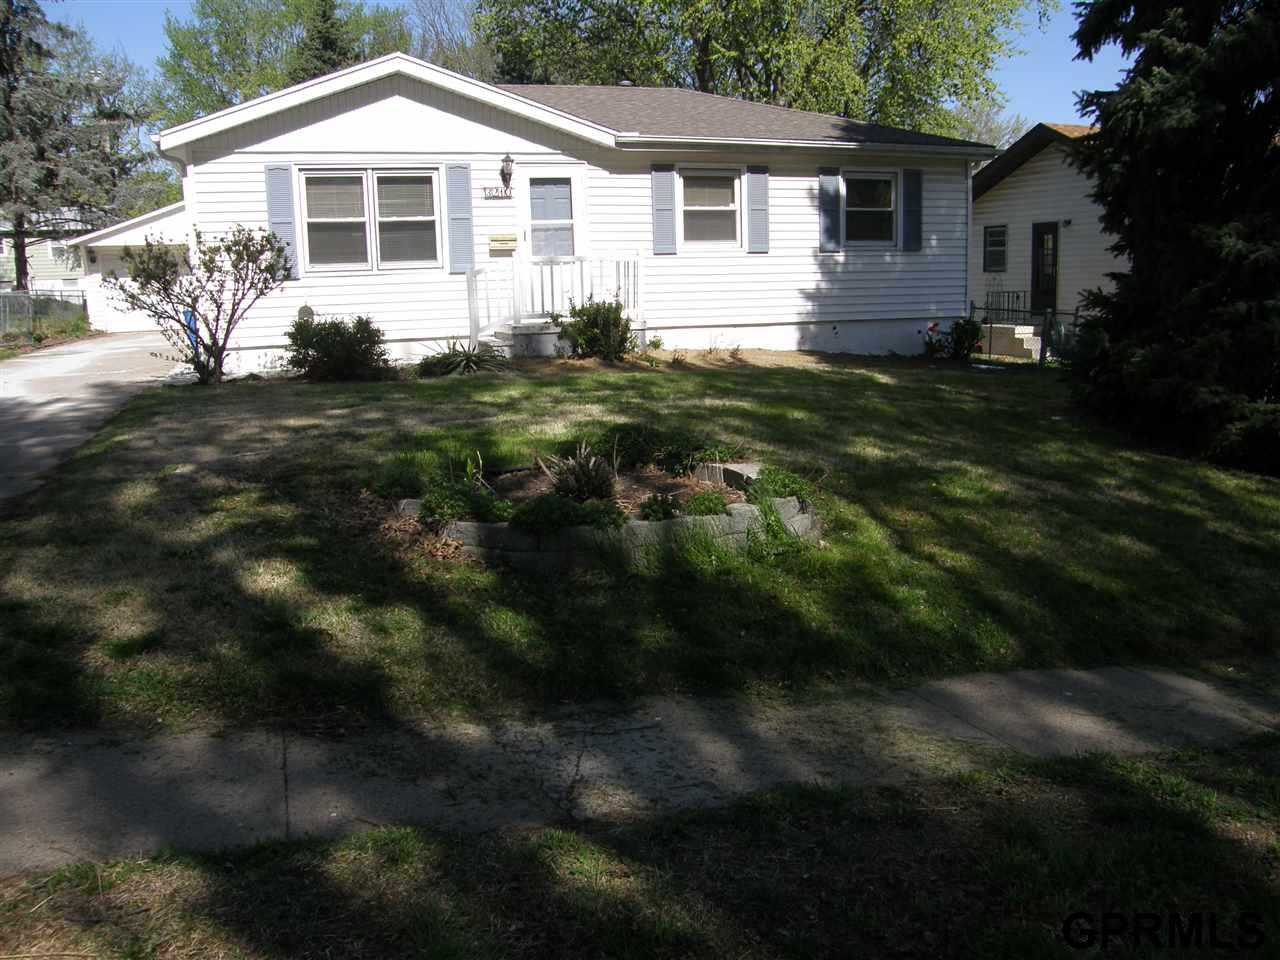 Rental Homes for Rent, ListingId:33026399, location: 3210 S 90 Omaha 68124